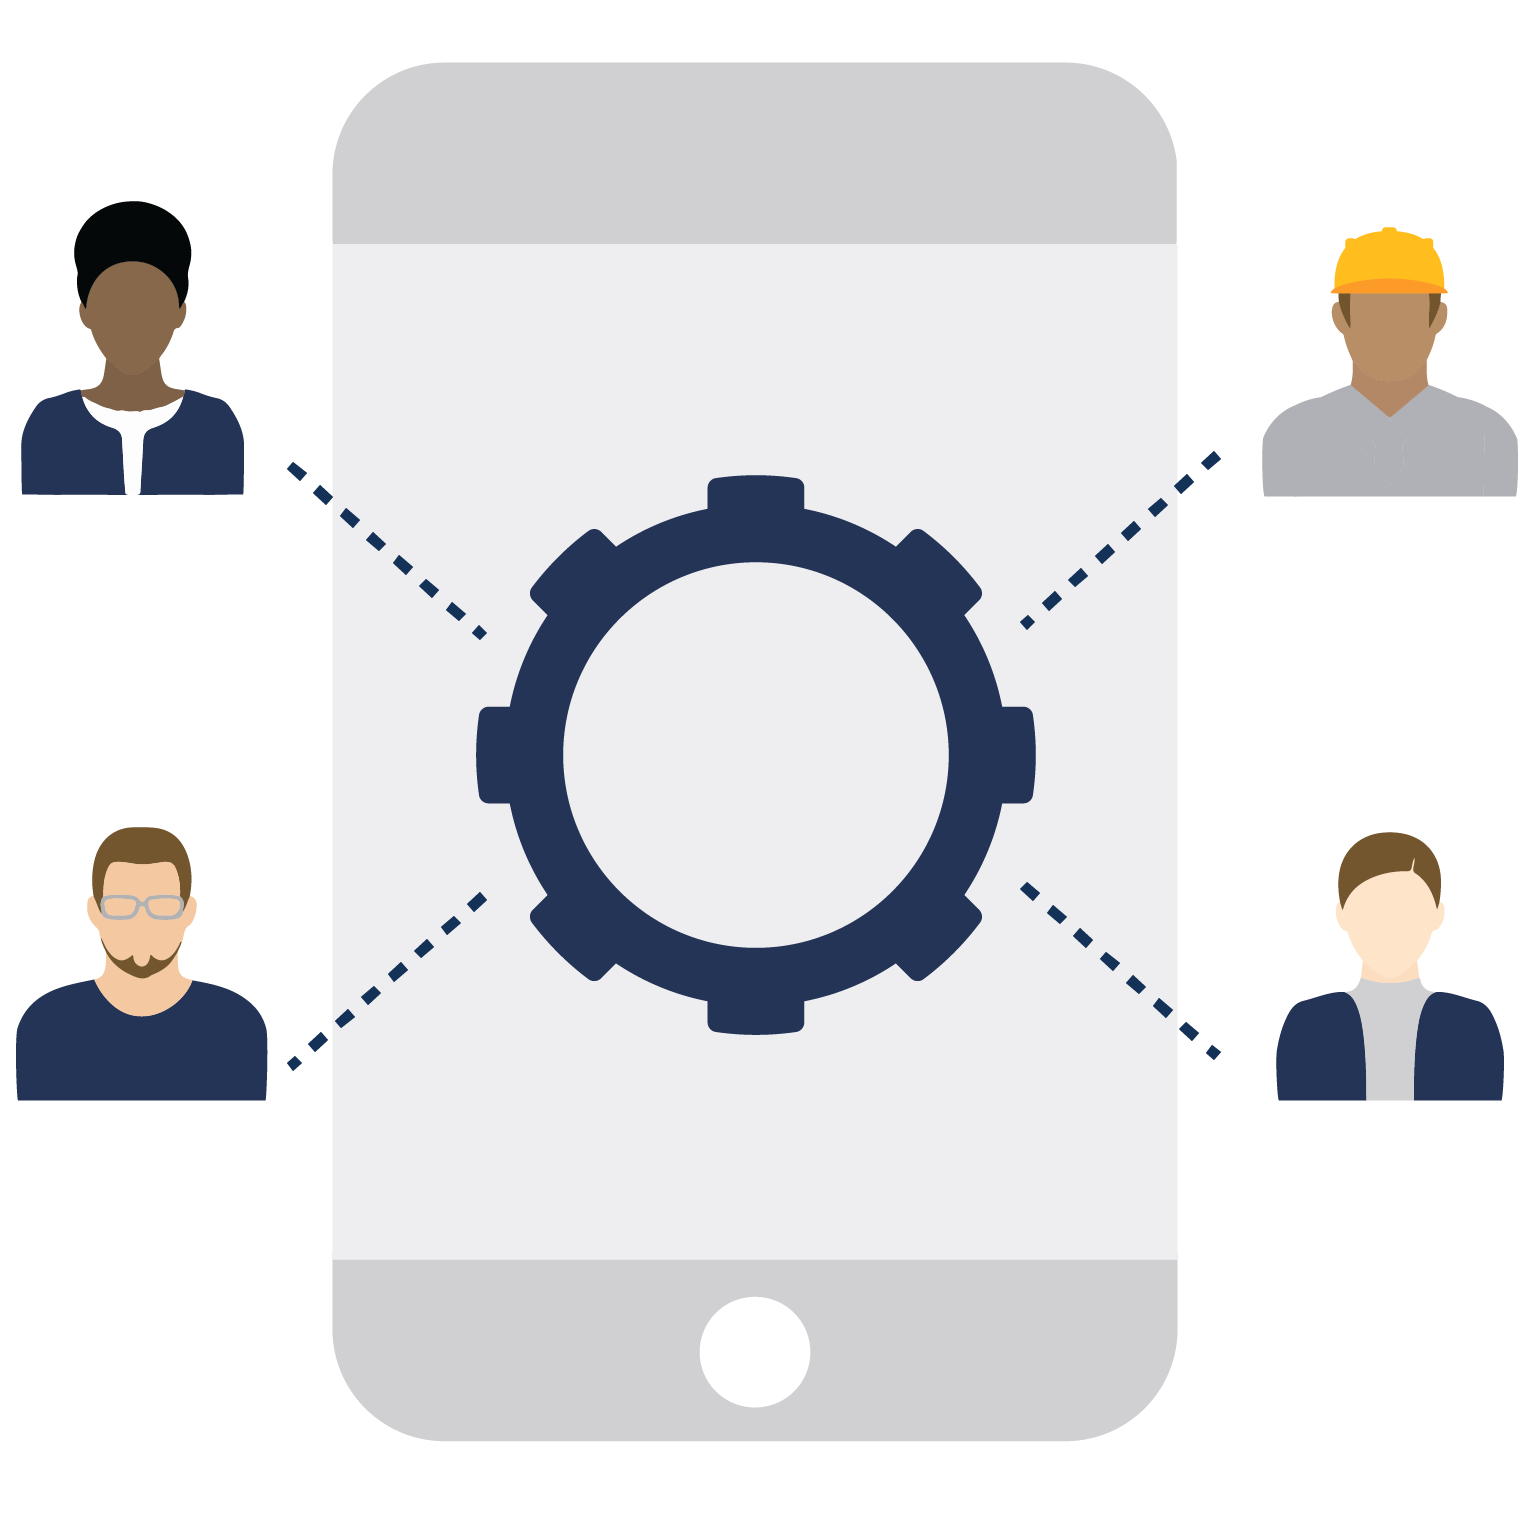 mobile workforce operations icon